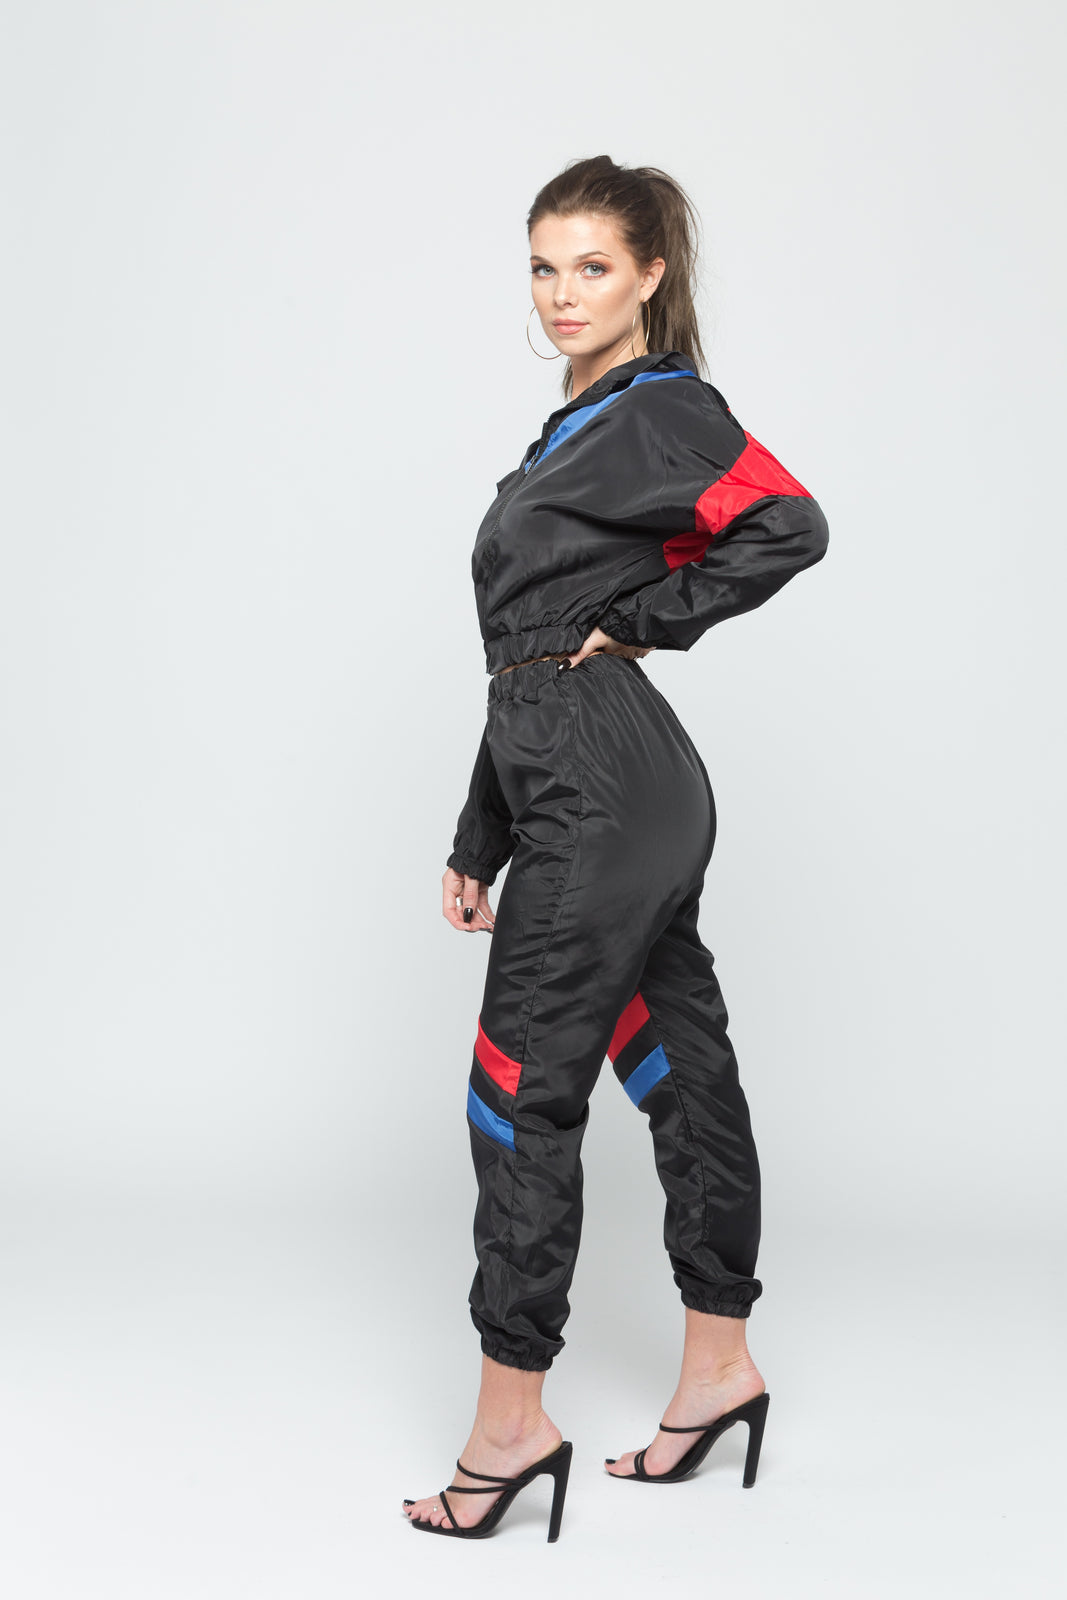 Red and Blue Contrast Tracksuit